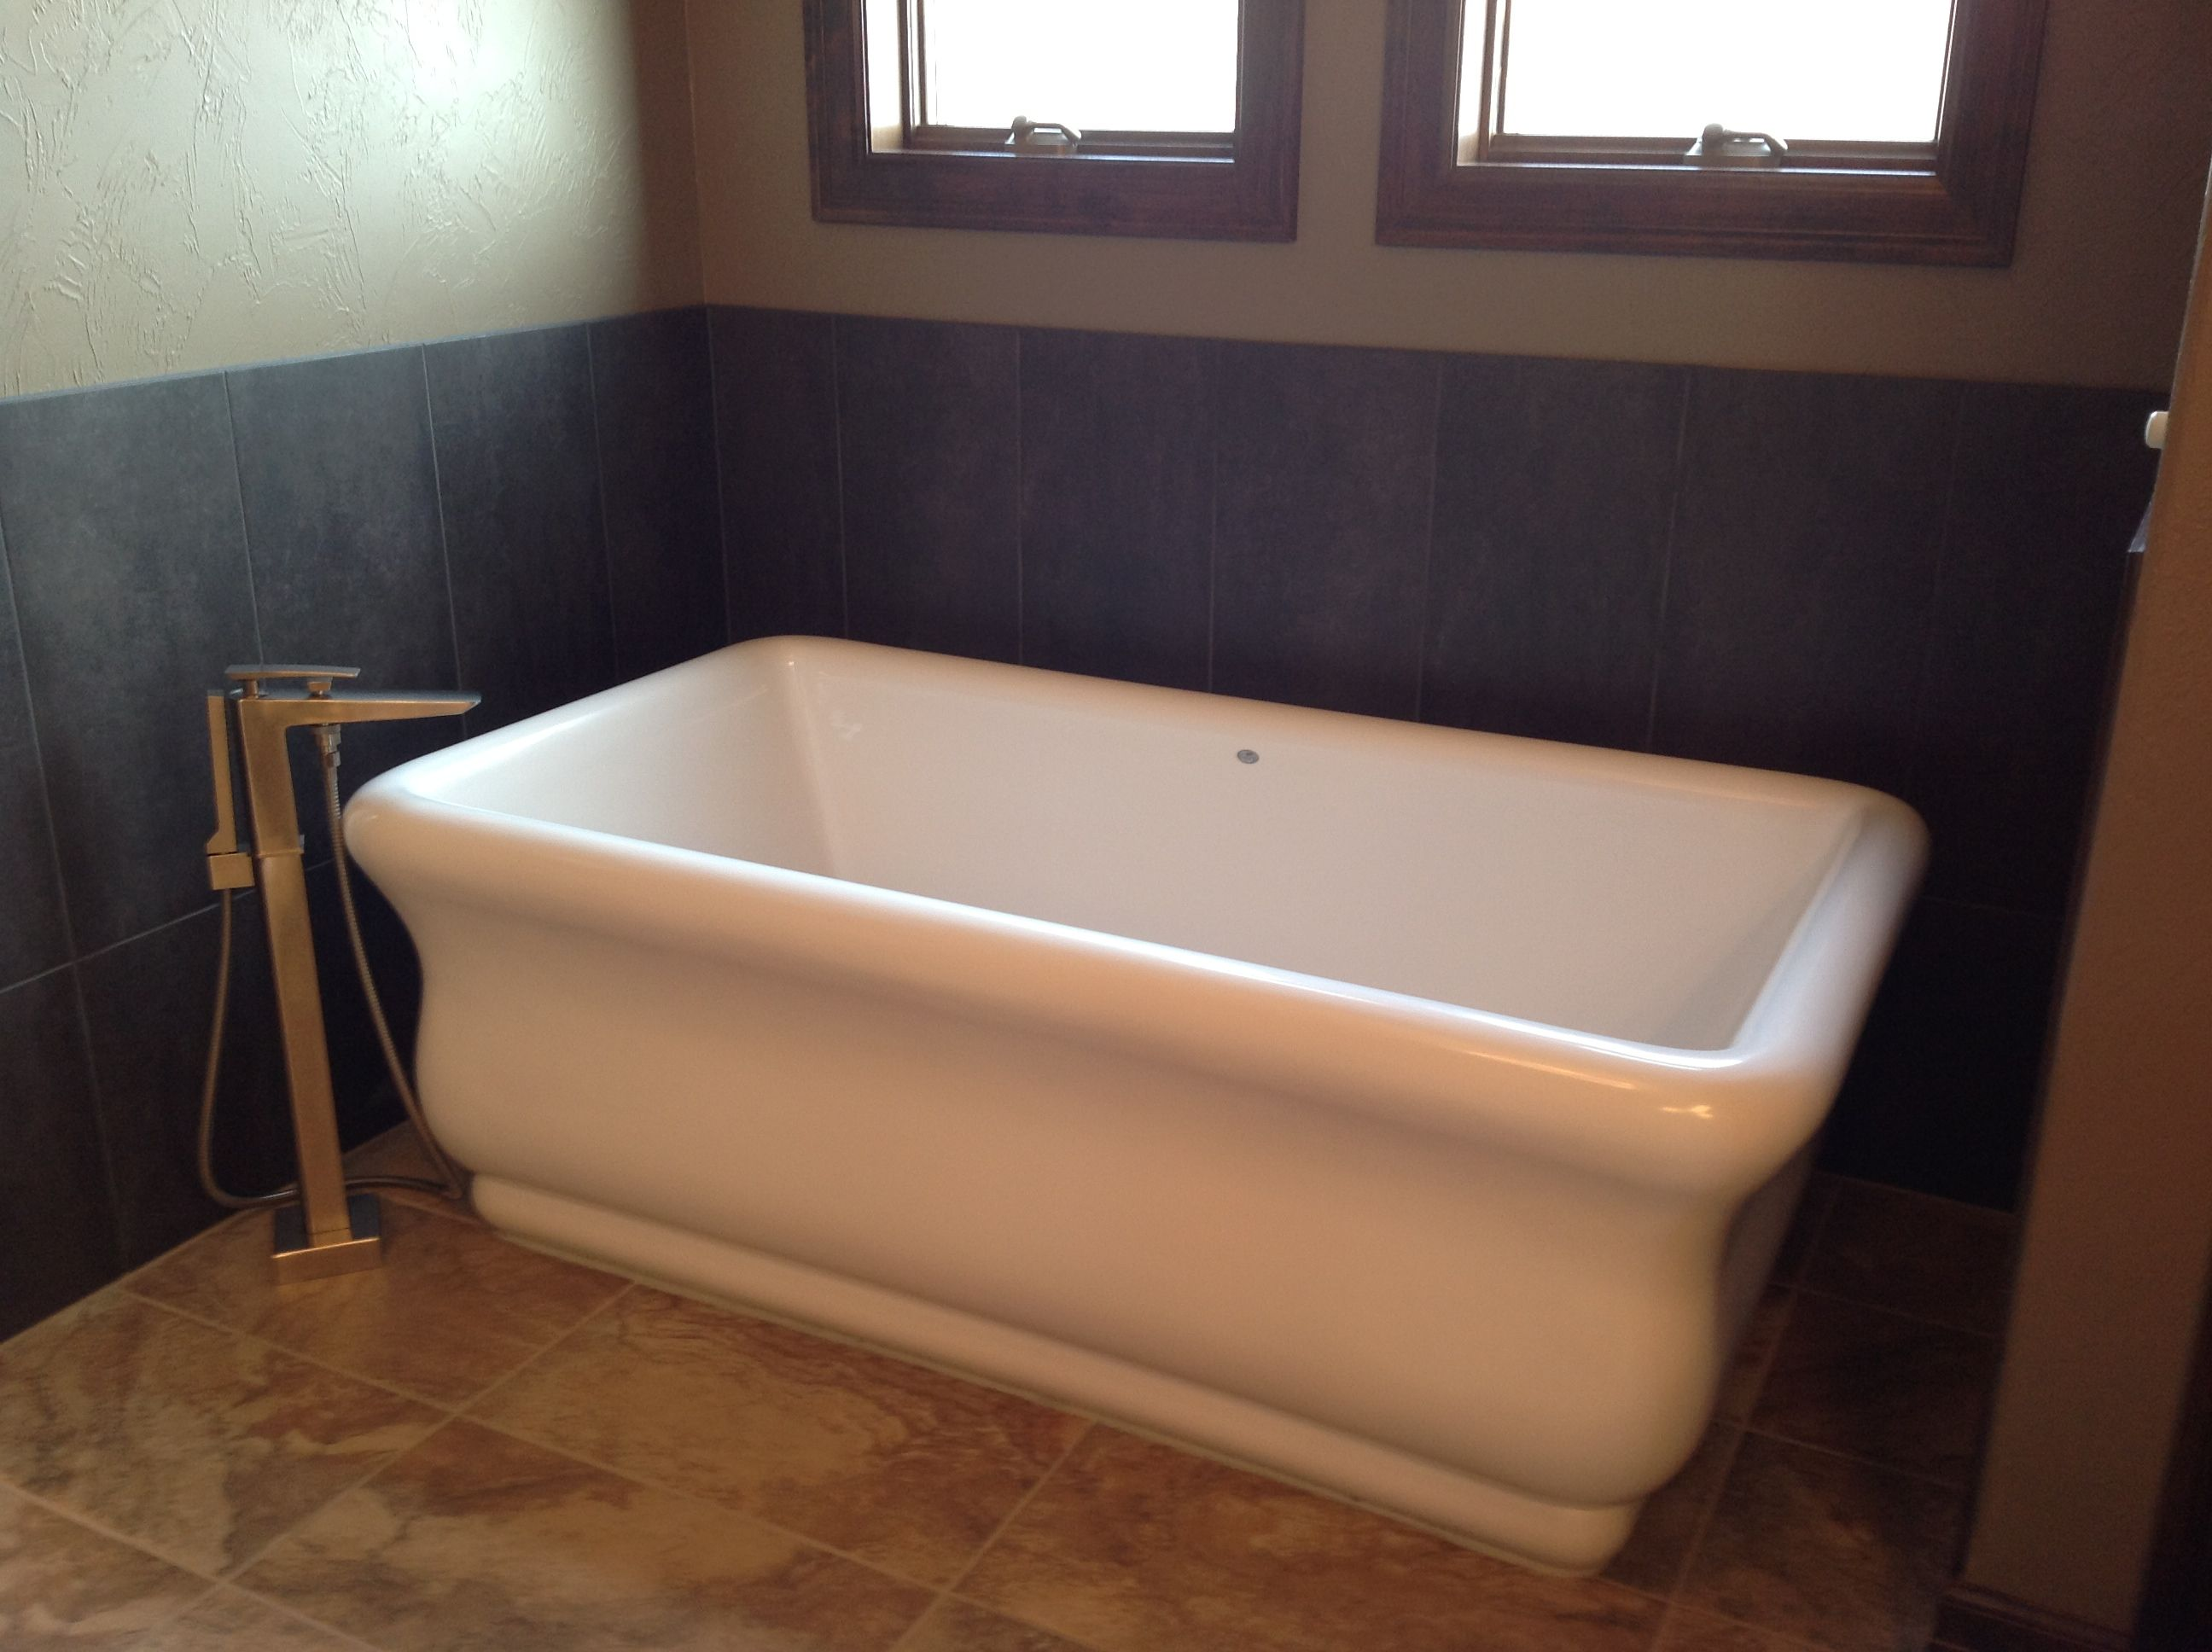 Vintage bath chic, Freestanding Tub with #Toto Faucet, available at ...